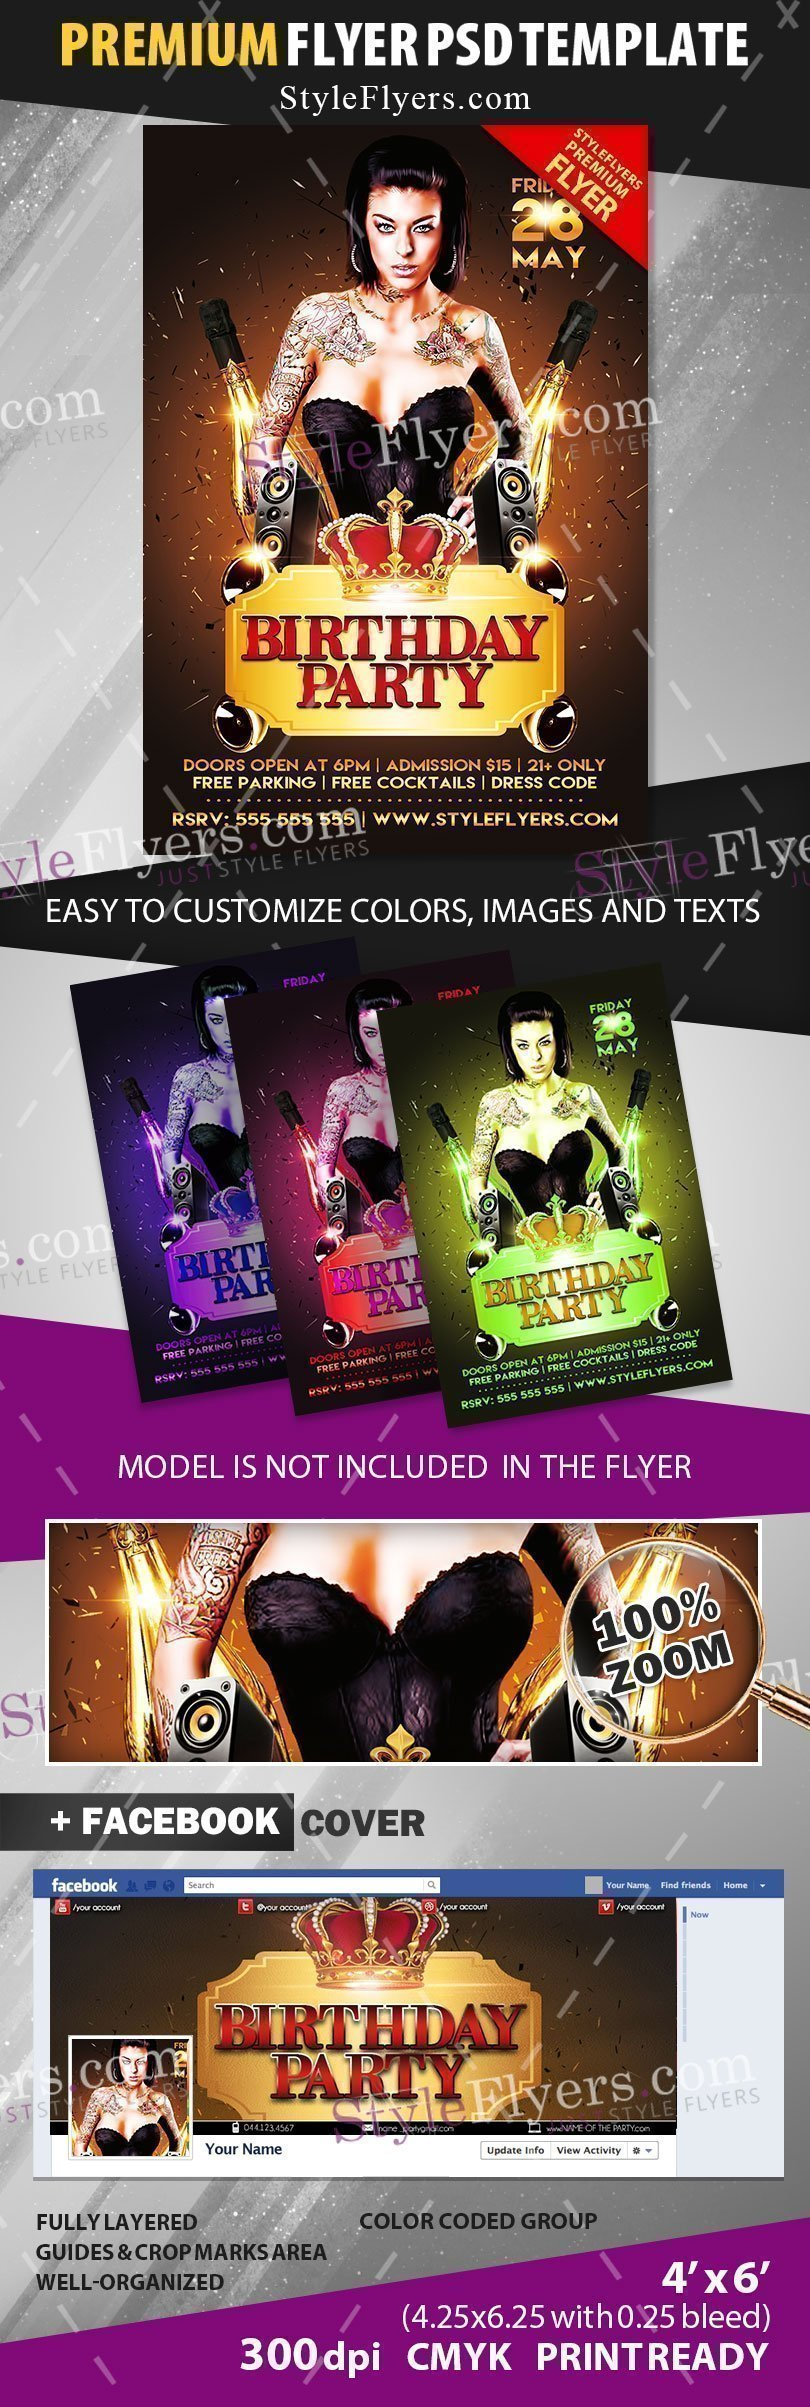 preview_Birthday_party_Flyer_premium_template